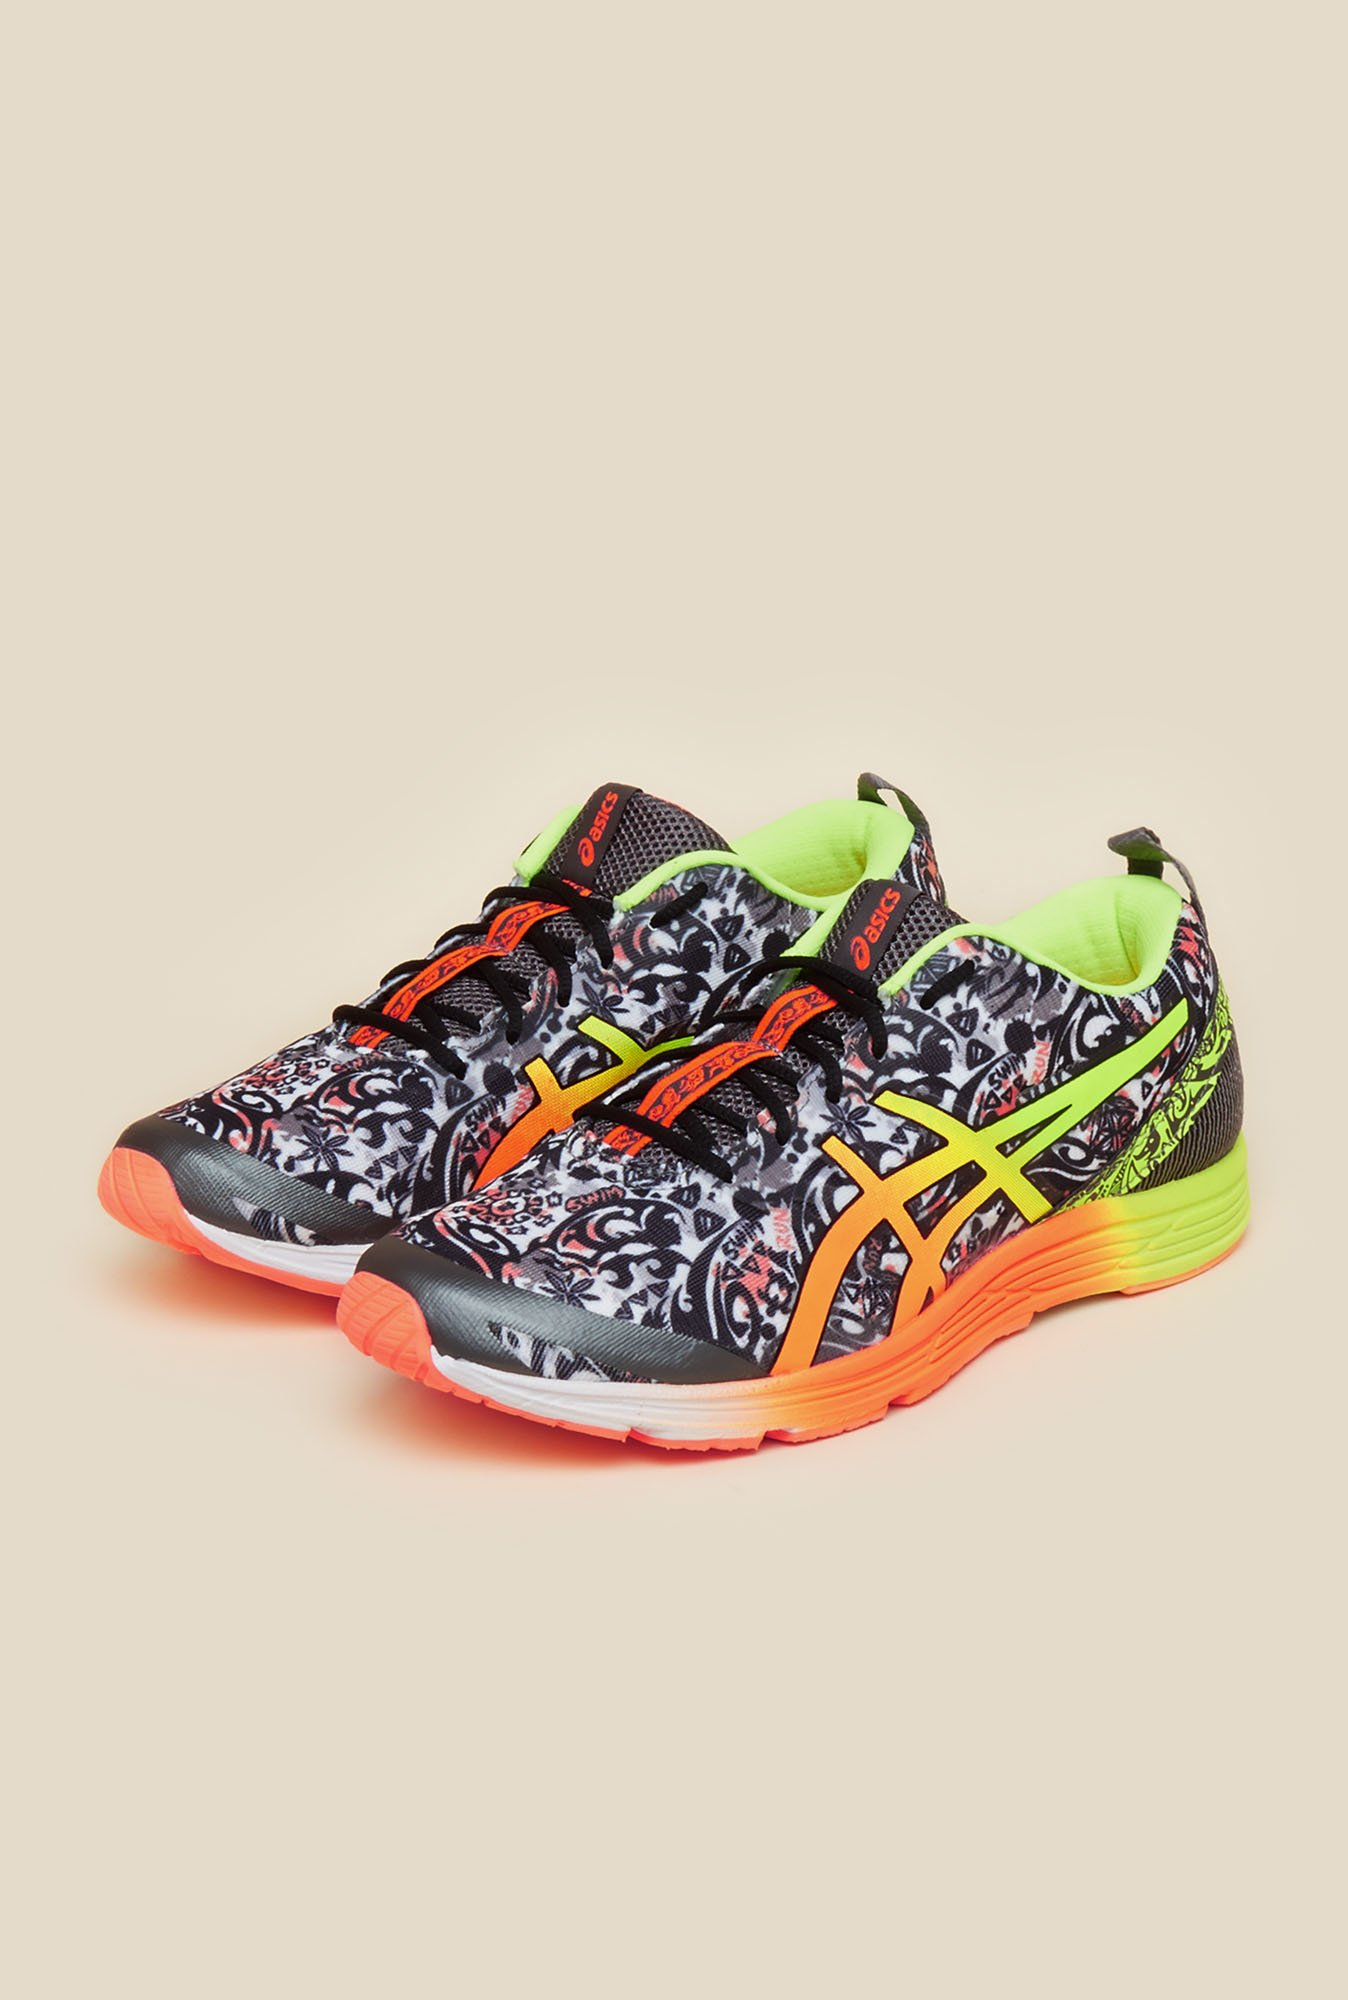 Asics Men's Gel-Hyper Tri 2 Running Shoes